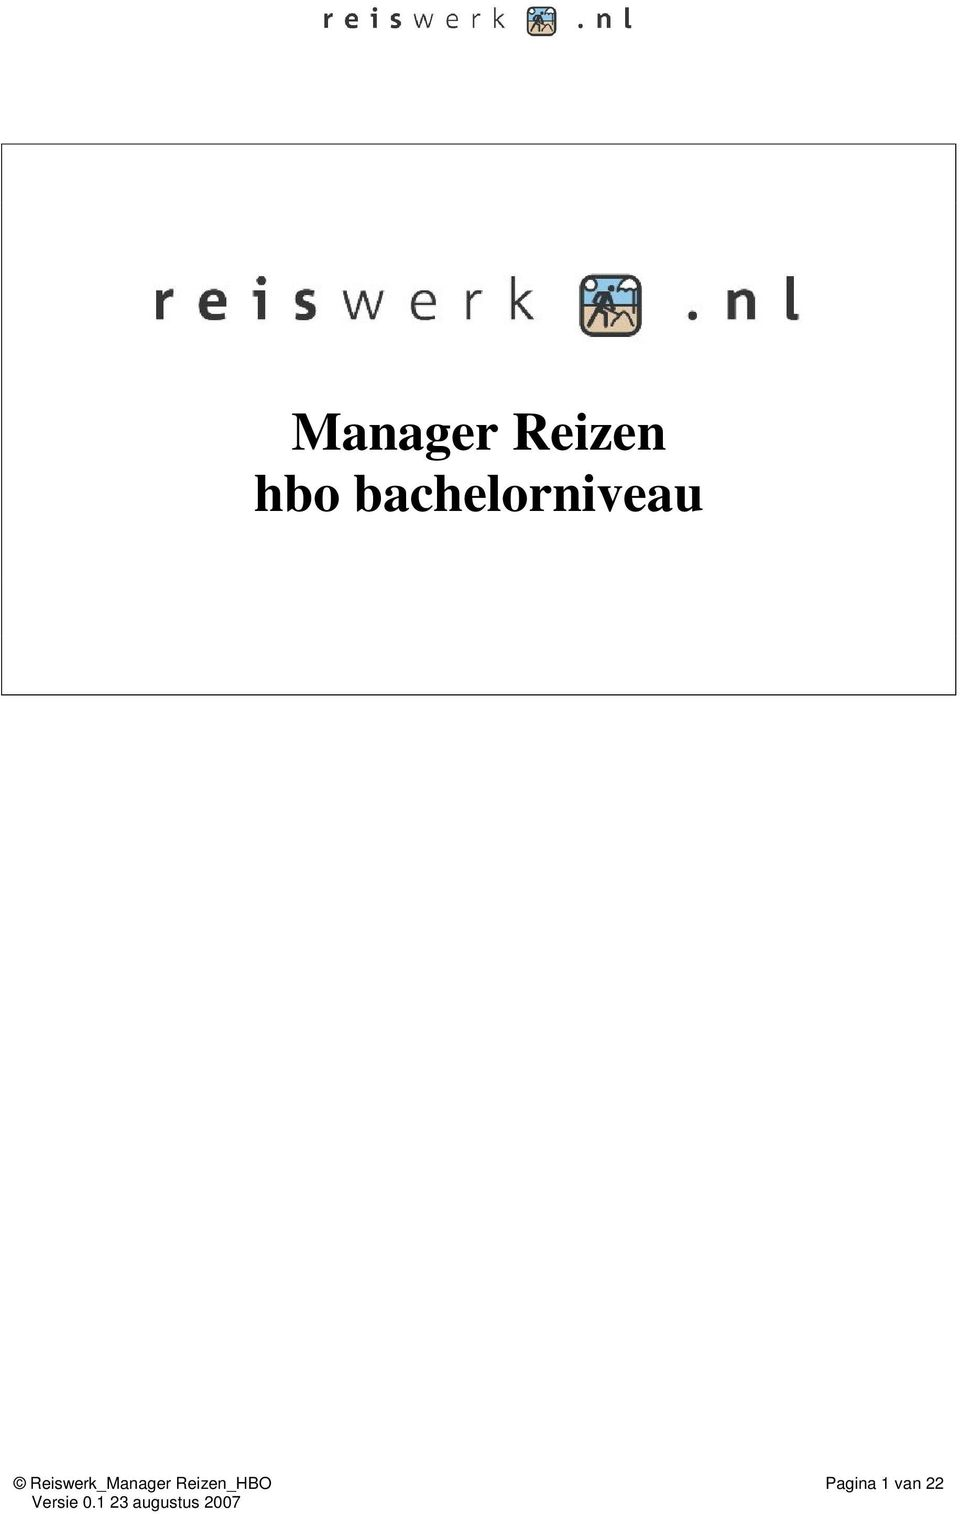 Reiswerk_Manager